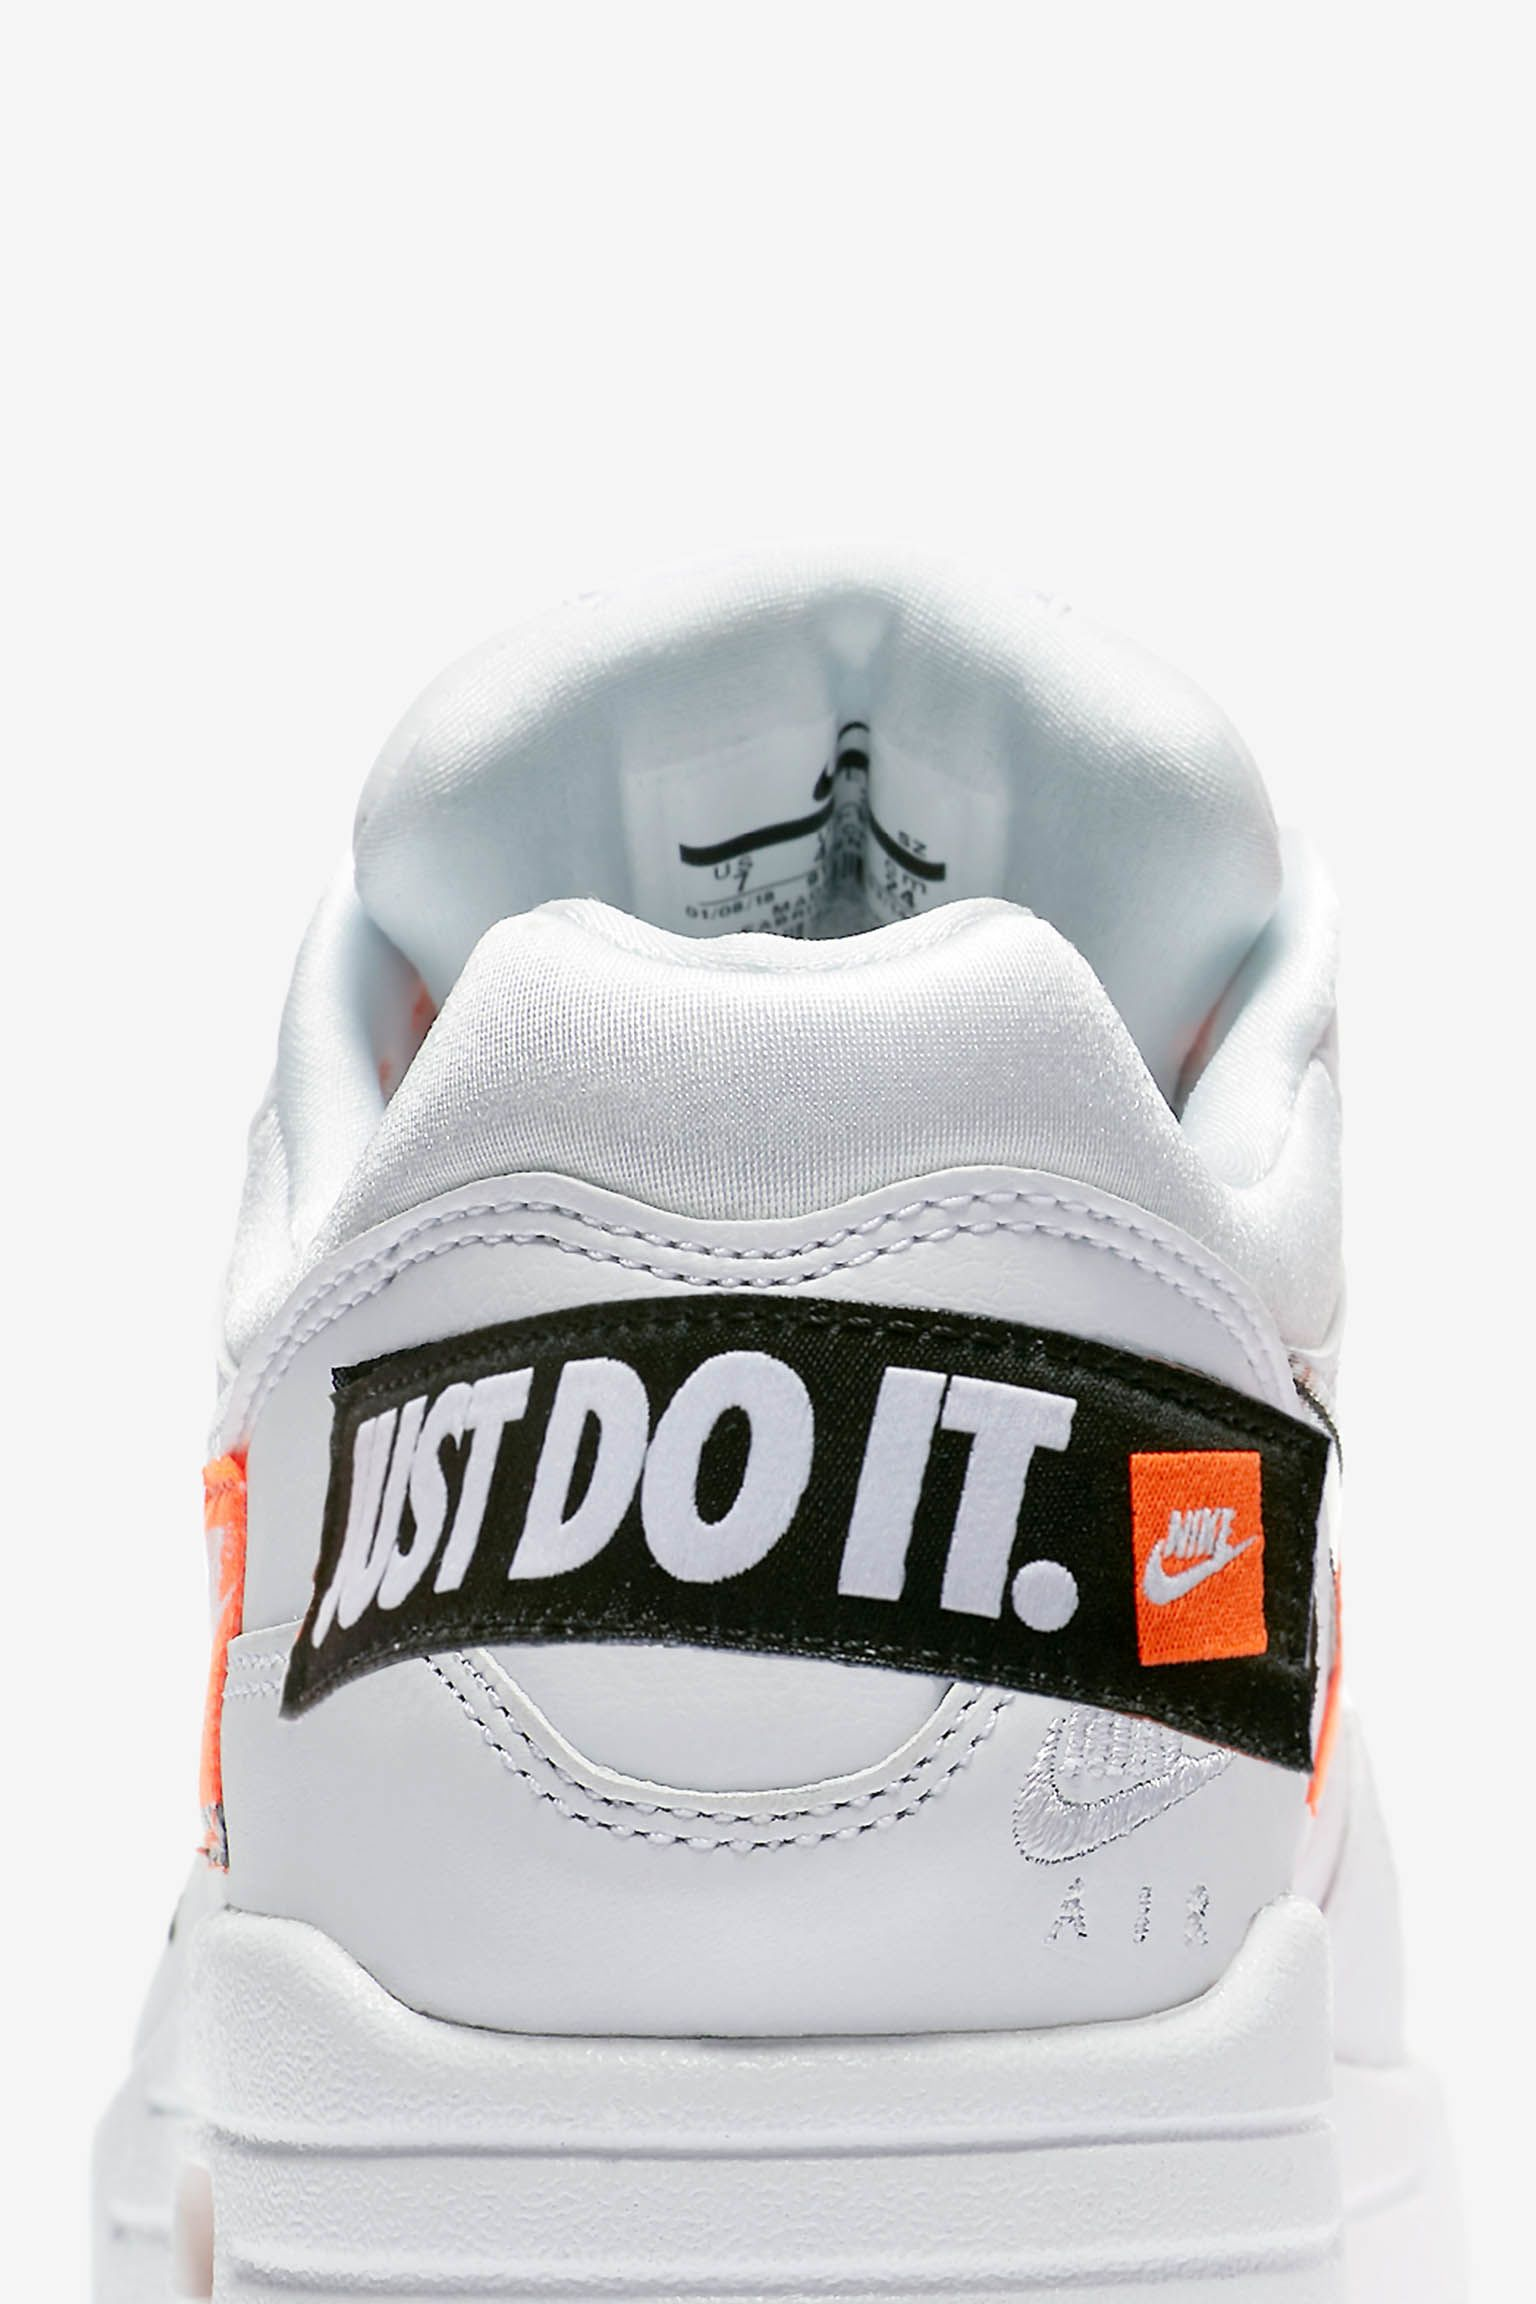 Nike Air Max 1 Just Do It Collection 'White & Total Orange' Release Date